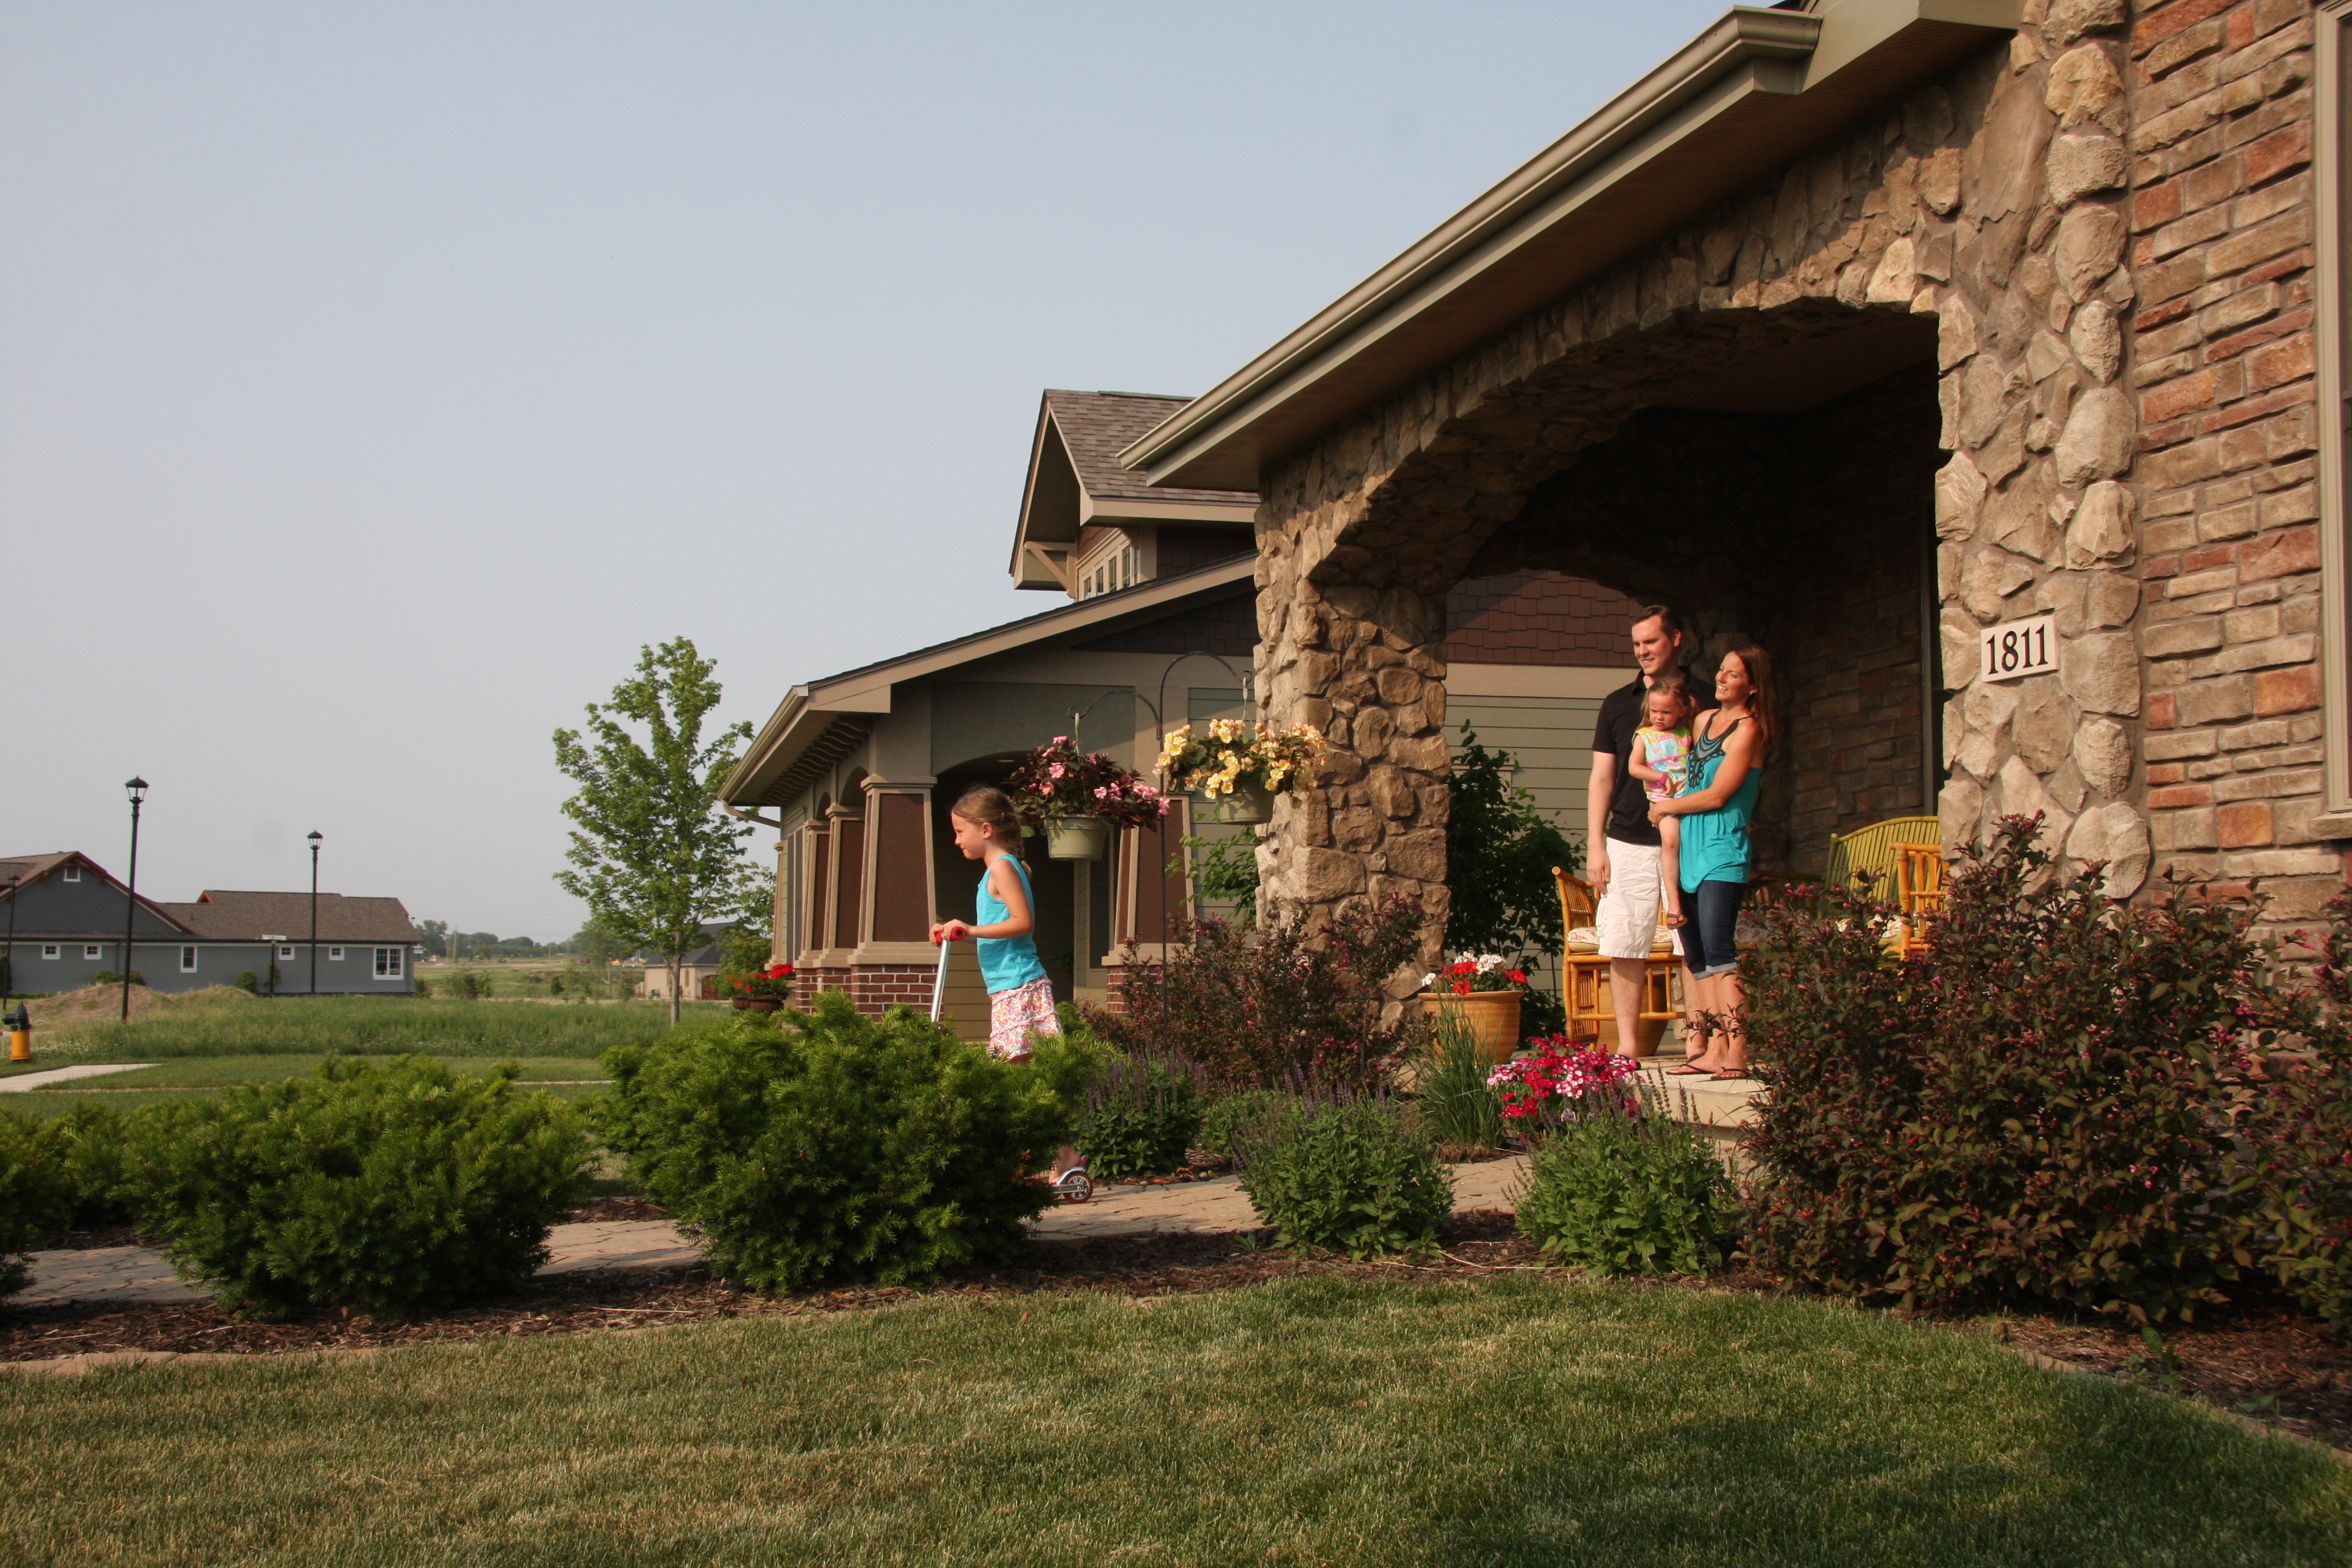 12++ Ankeny golf and country club jobs viral